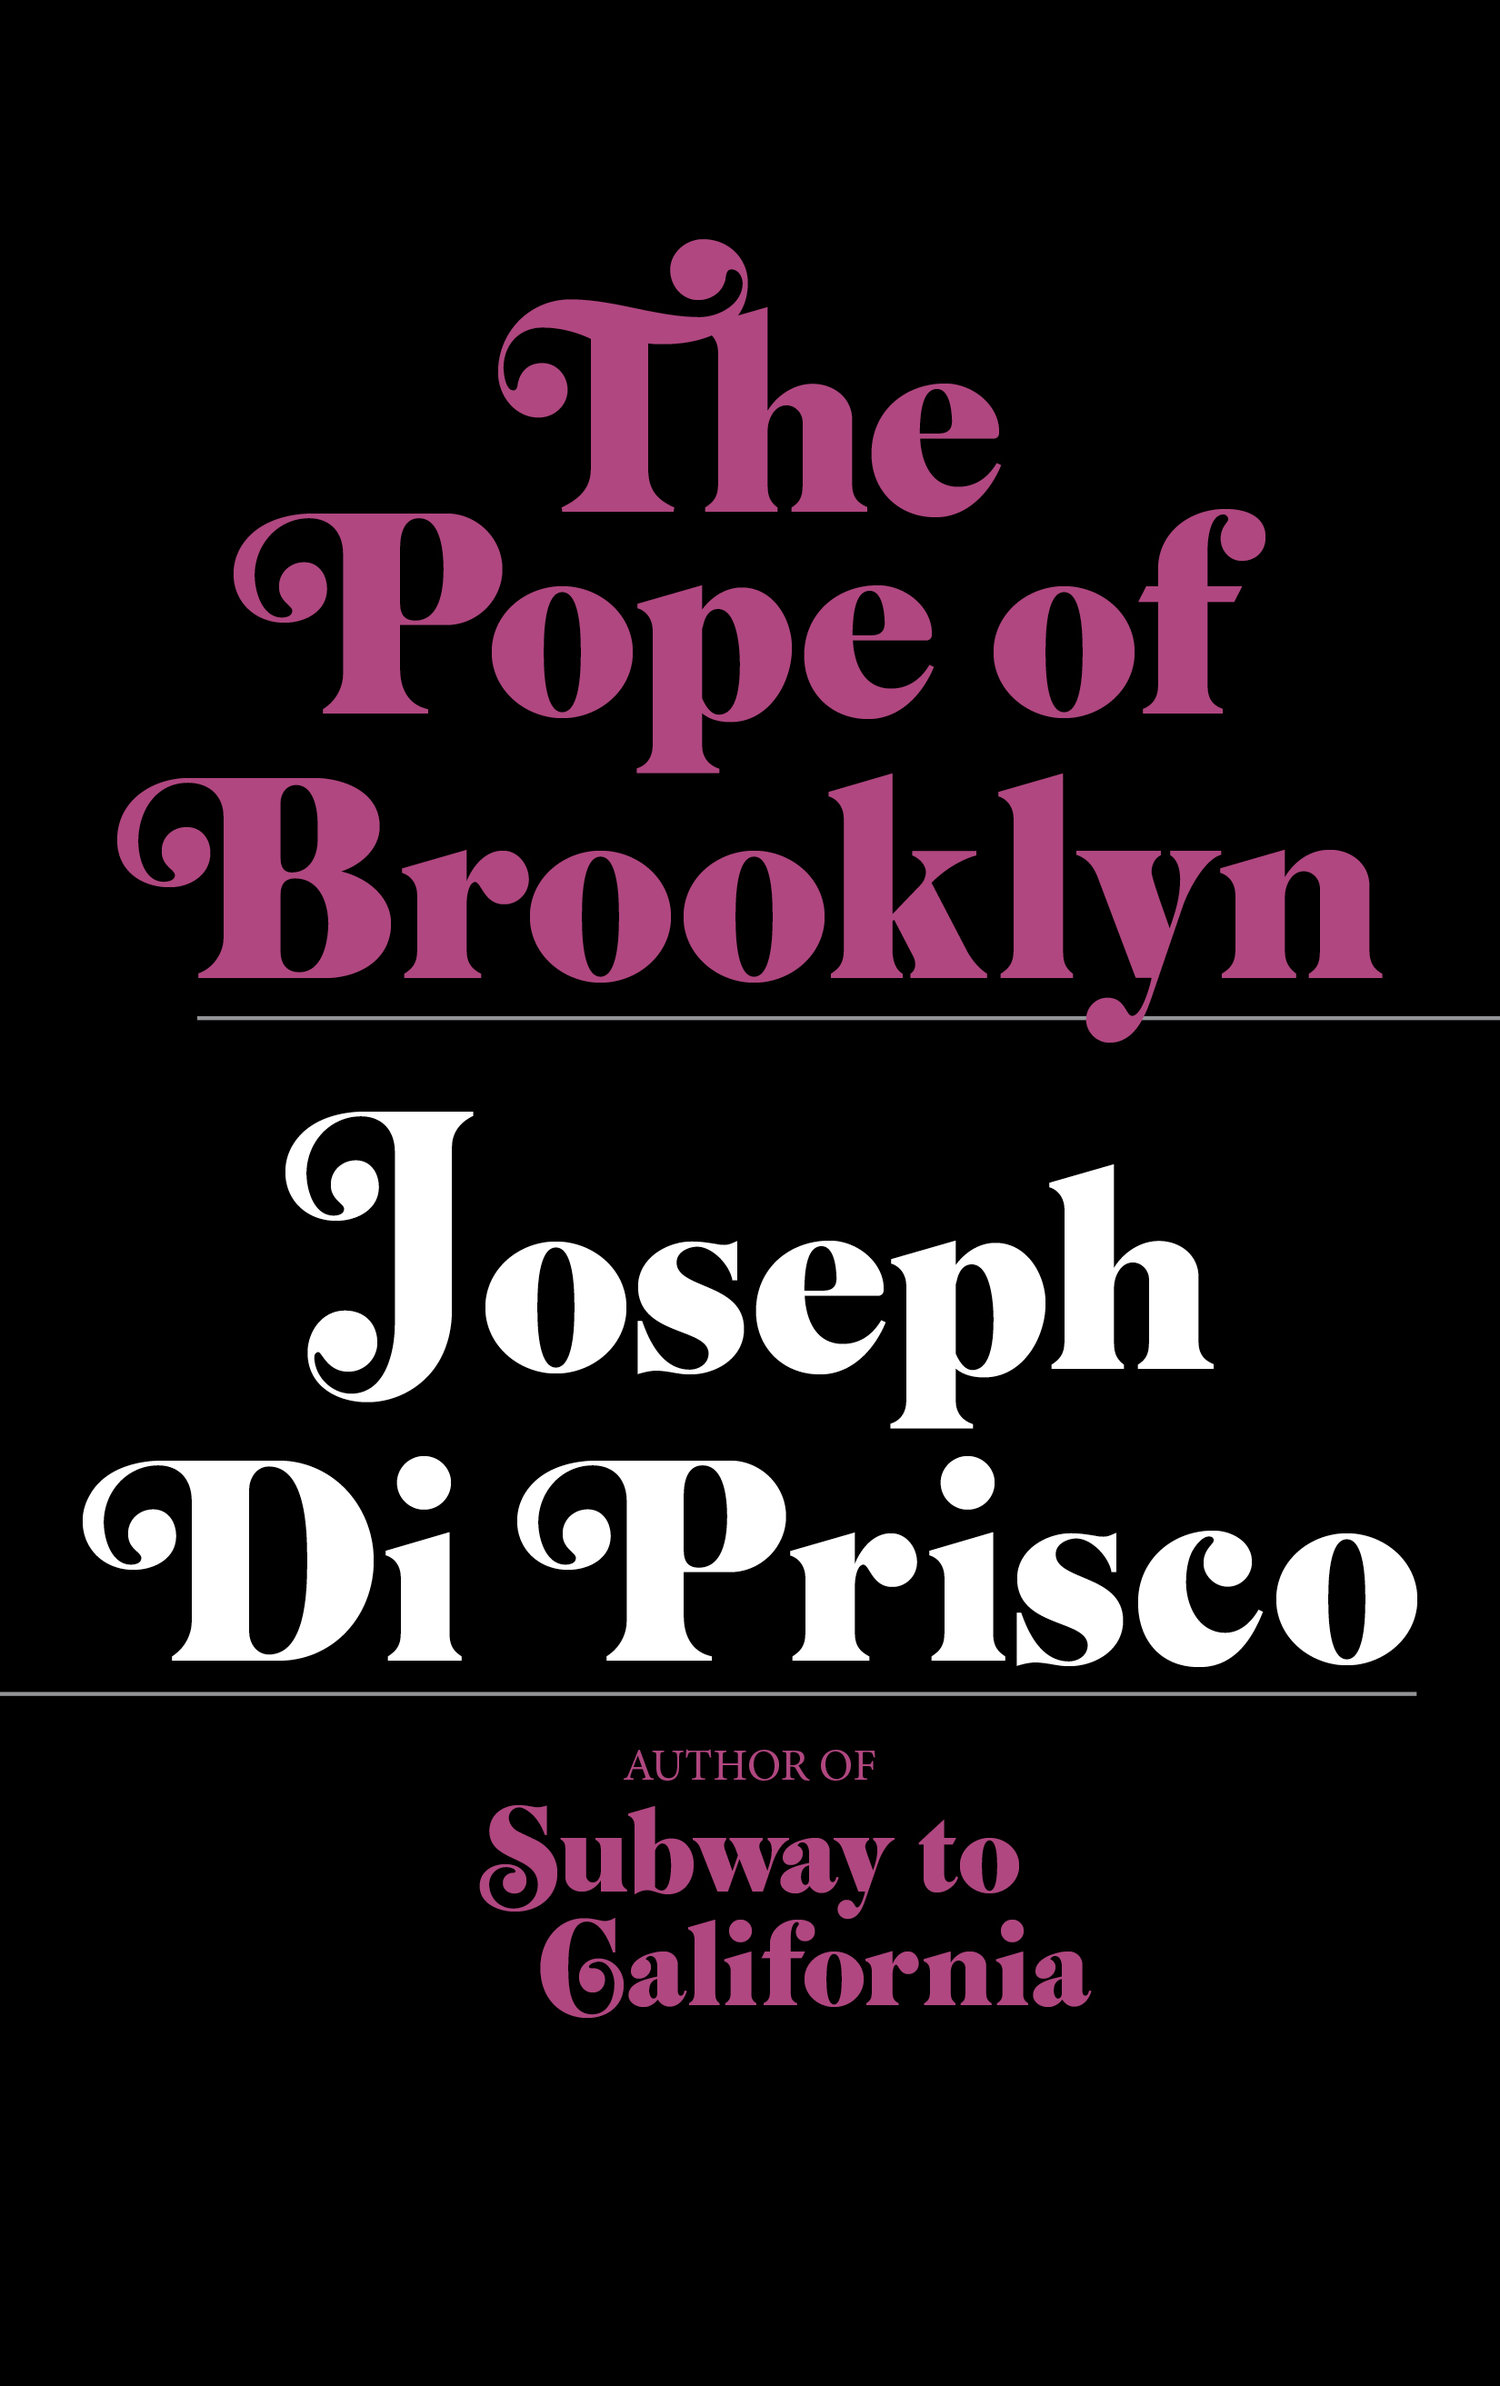 Fathers, Sons And Little Scraps Of Wisdom: Joseph Di Prisco's The Pope Of Brooklyn